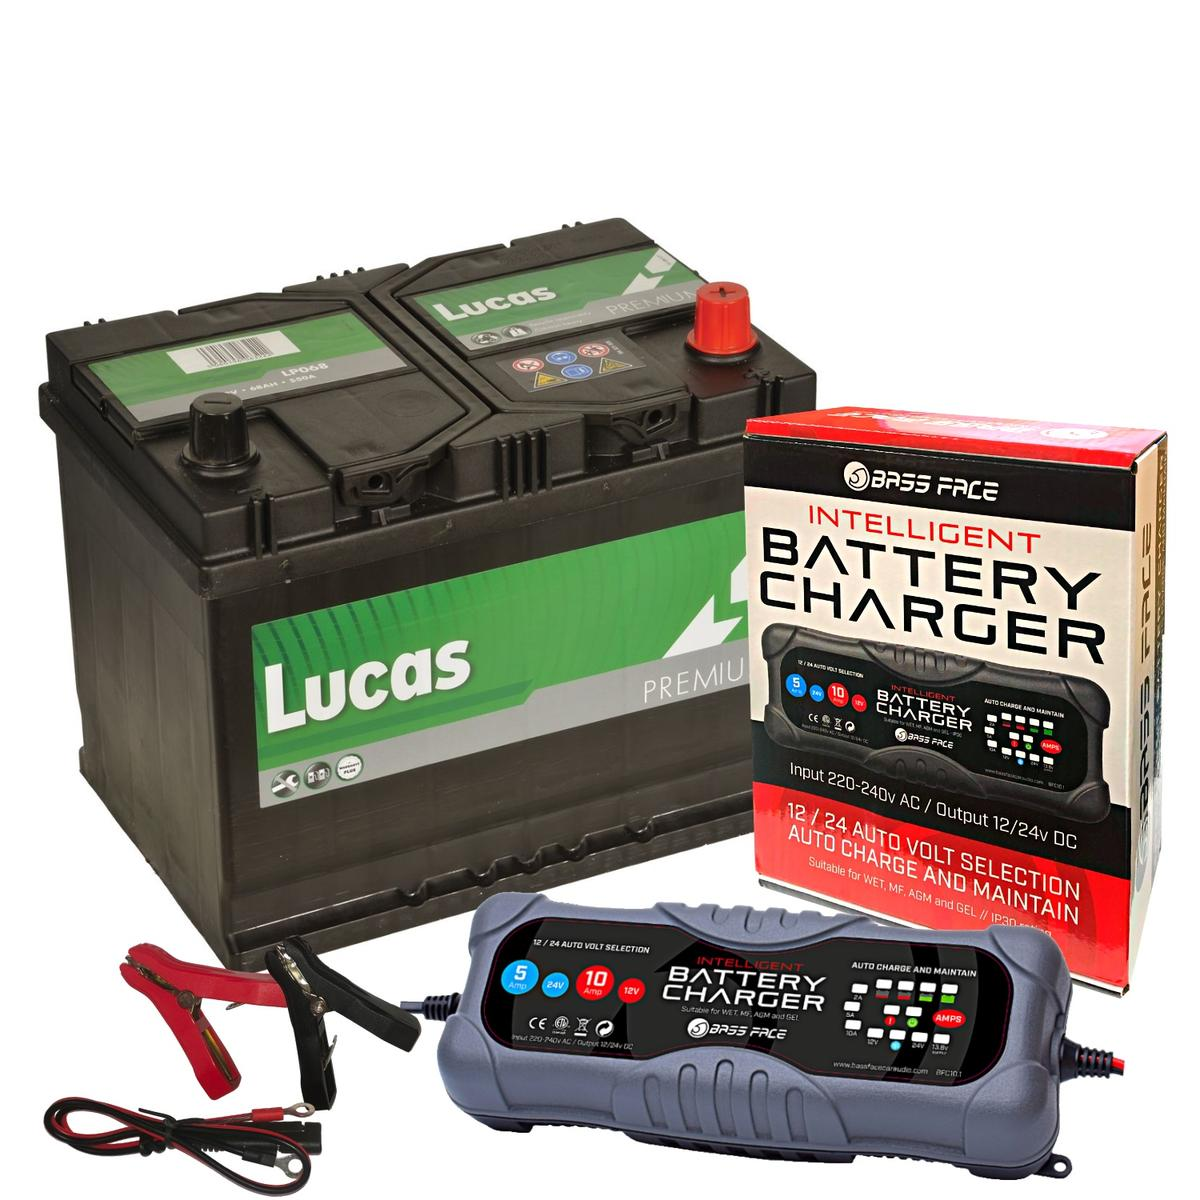 Lucas LP068 Toyota 4 Year Car Battery 12v 68Ah 540CCA W/ 10 Amp Charger